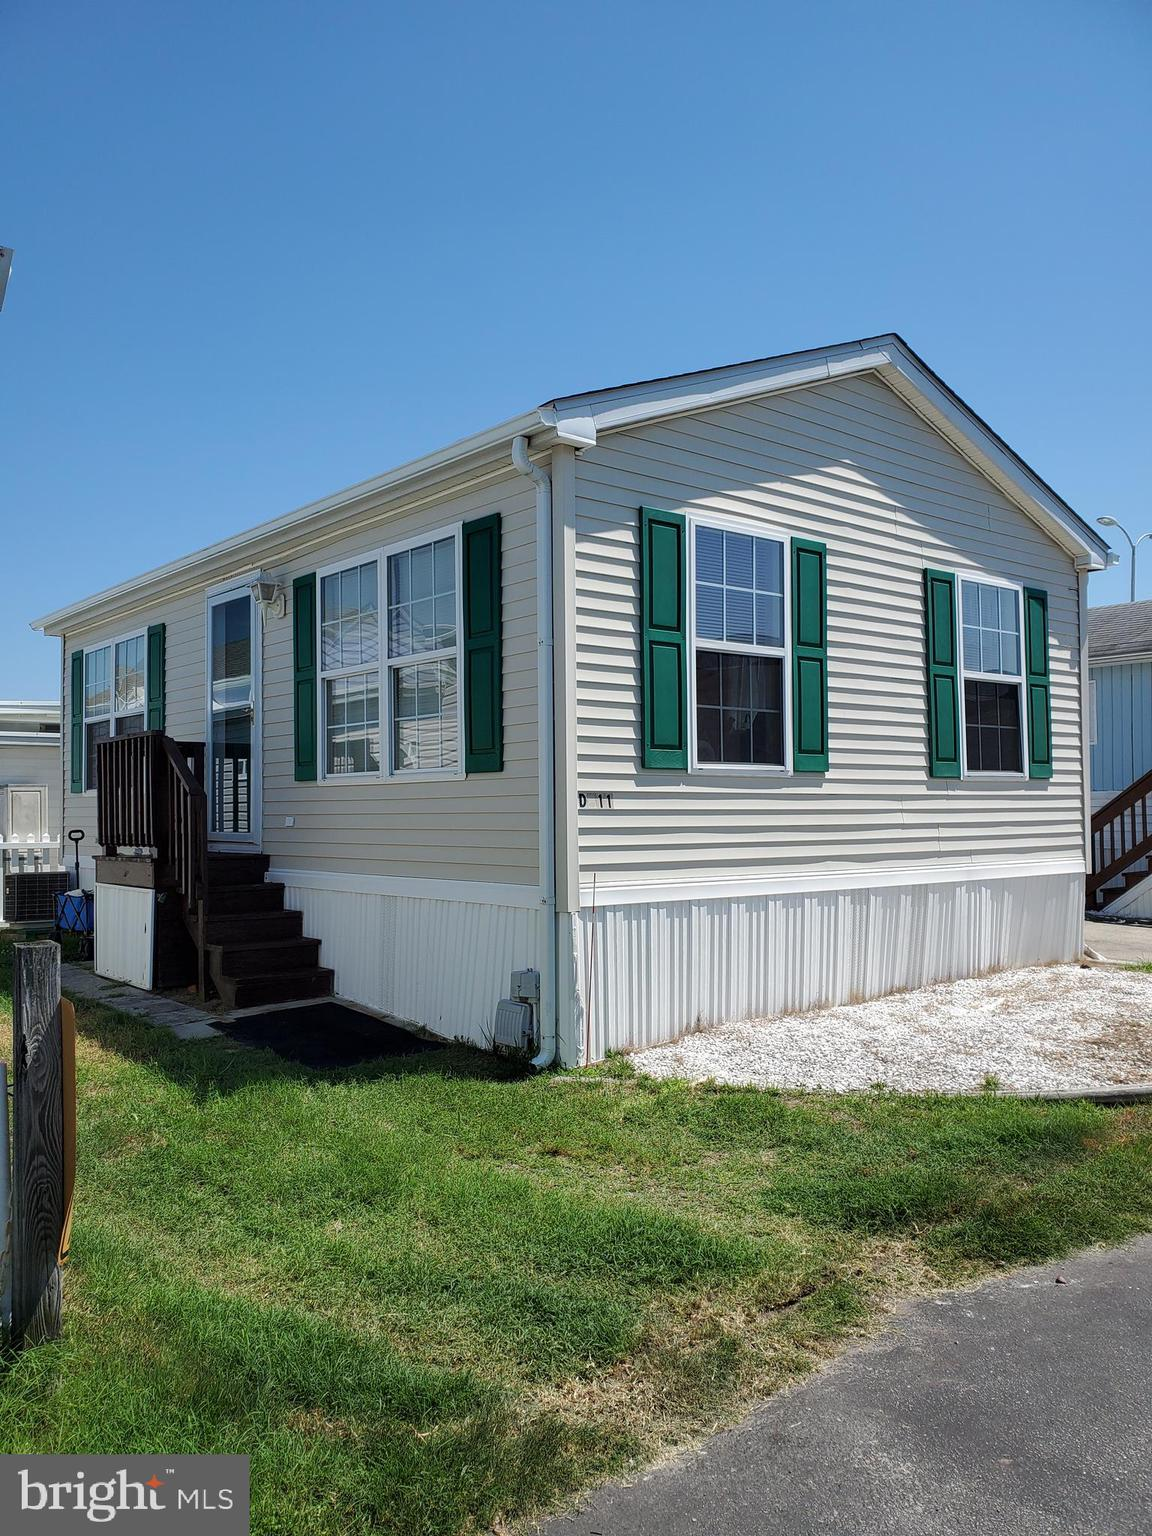 In the Heart of Ocean City!  This home is 2 Blocks from the Boardwalk located in this well kept Waterfront Community.   Low Association Fees which includes Water, sewer & trash, and  low settlement cost.  Possible Owner Financing with acceptable credit.  This Beach Cottage features Open Floor plan with one bedroom & one Full Bath and a great layout,  Great Condition and sleeps 6.   Don't delay call today!